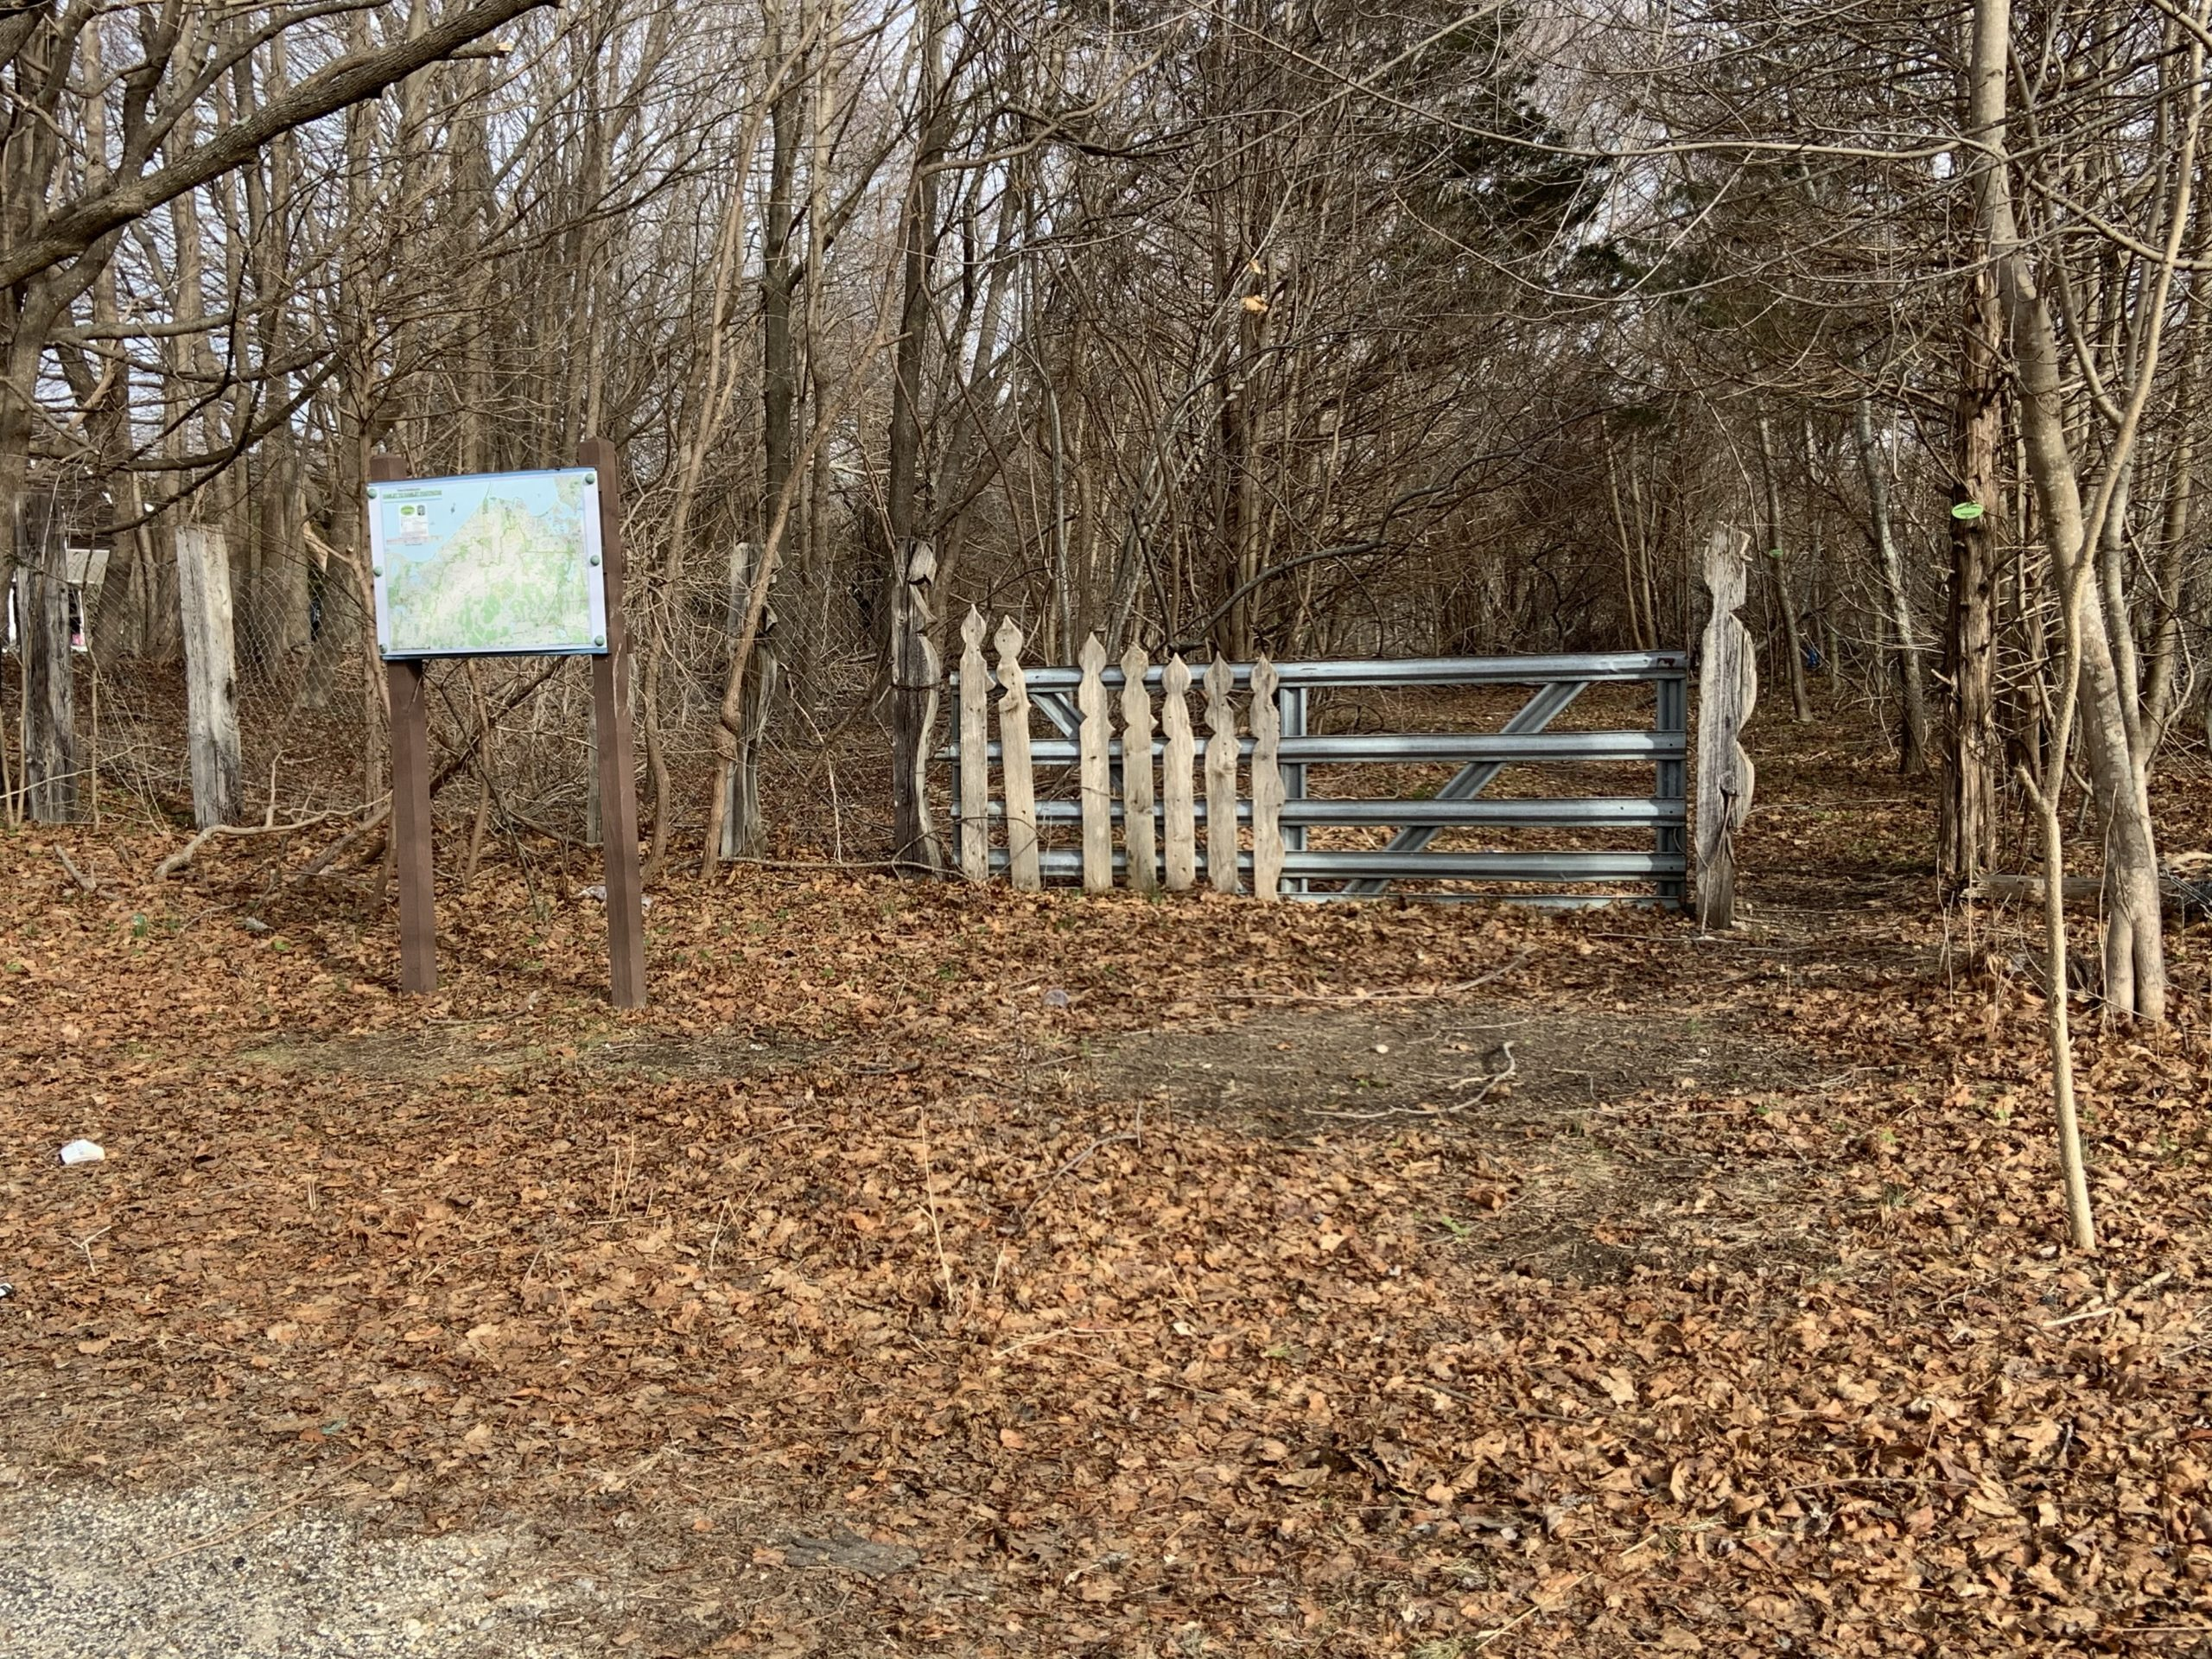 The entrance to a trail along the old railroad spur between Bridgehampton and Sag Harbor is marked with a trail sign at Lumber Lane. STEPHEN J. KOTZ